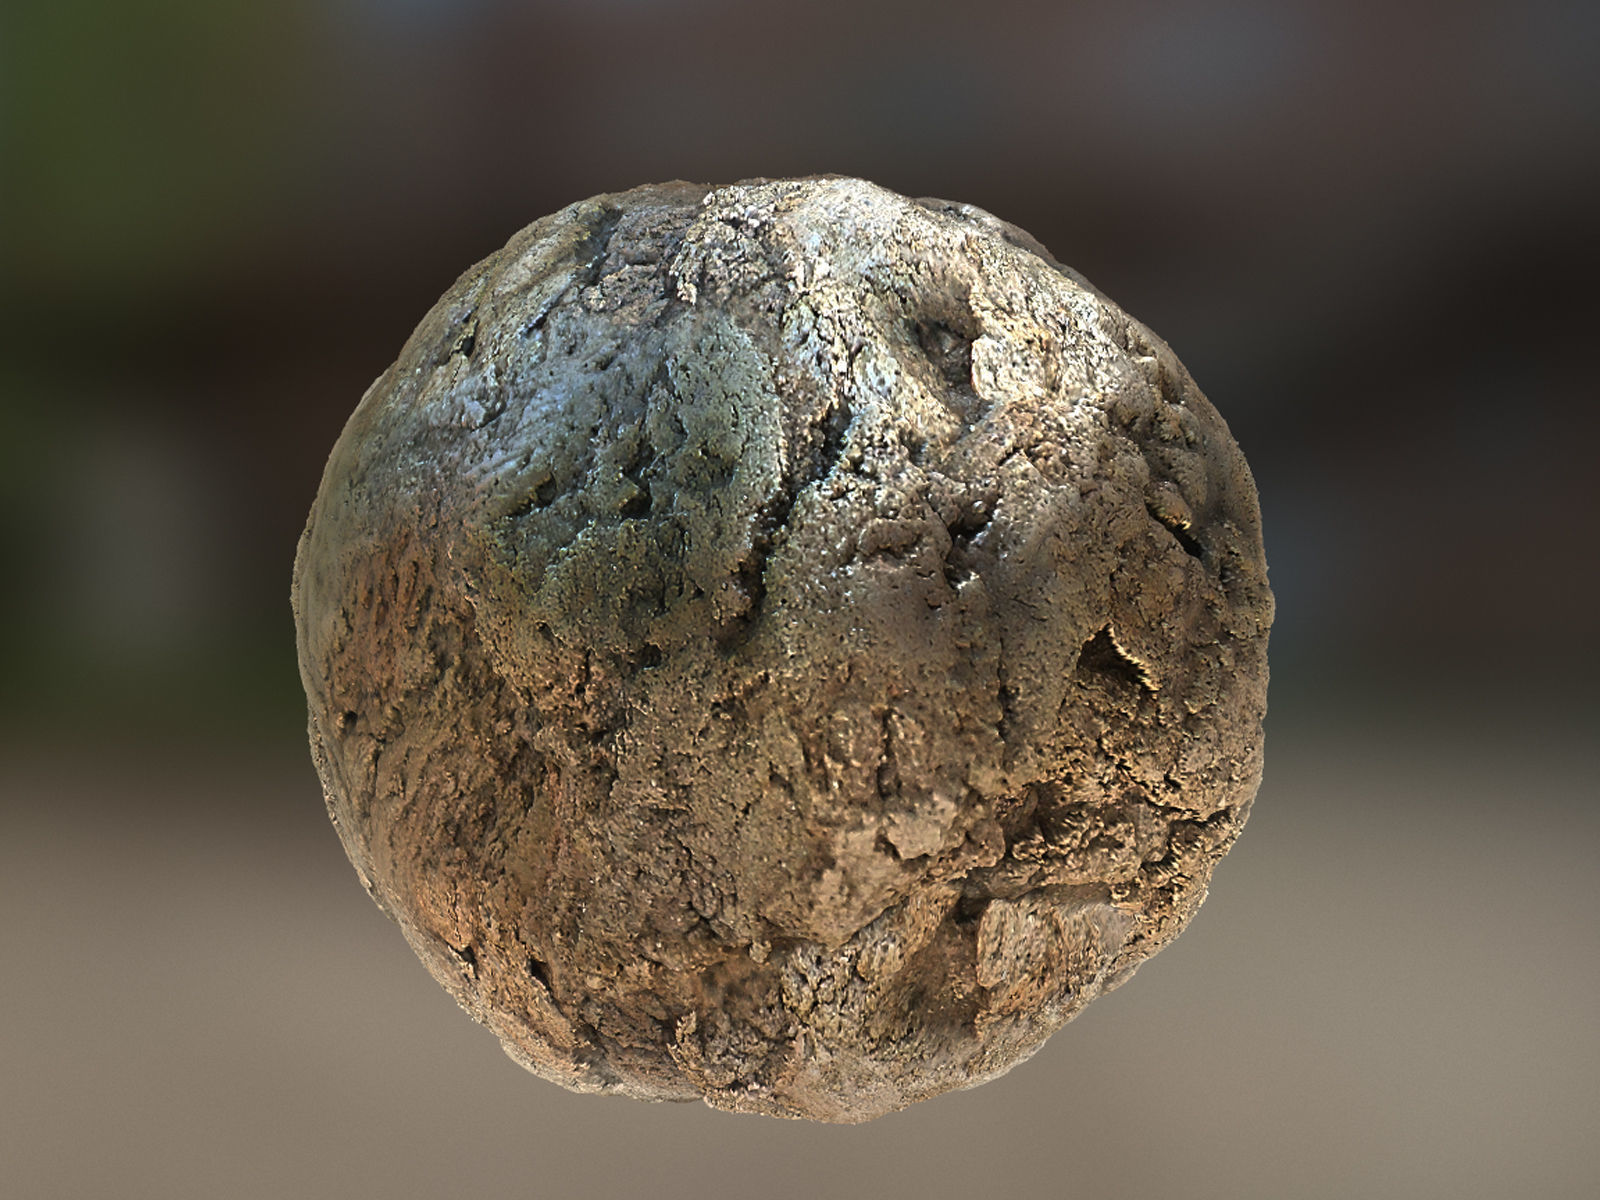 PBR Material Texture set 017 Clay Ground Silver